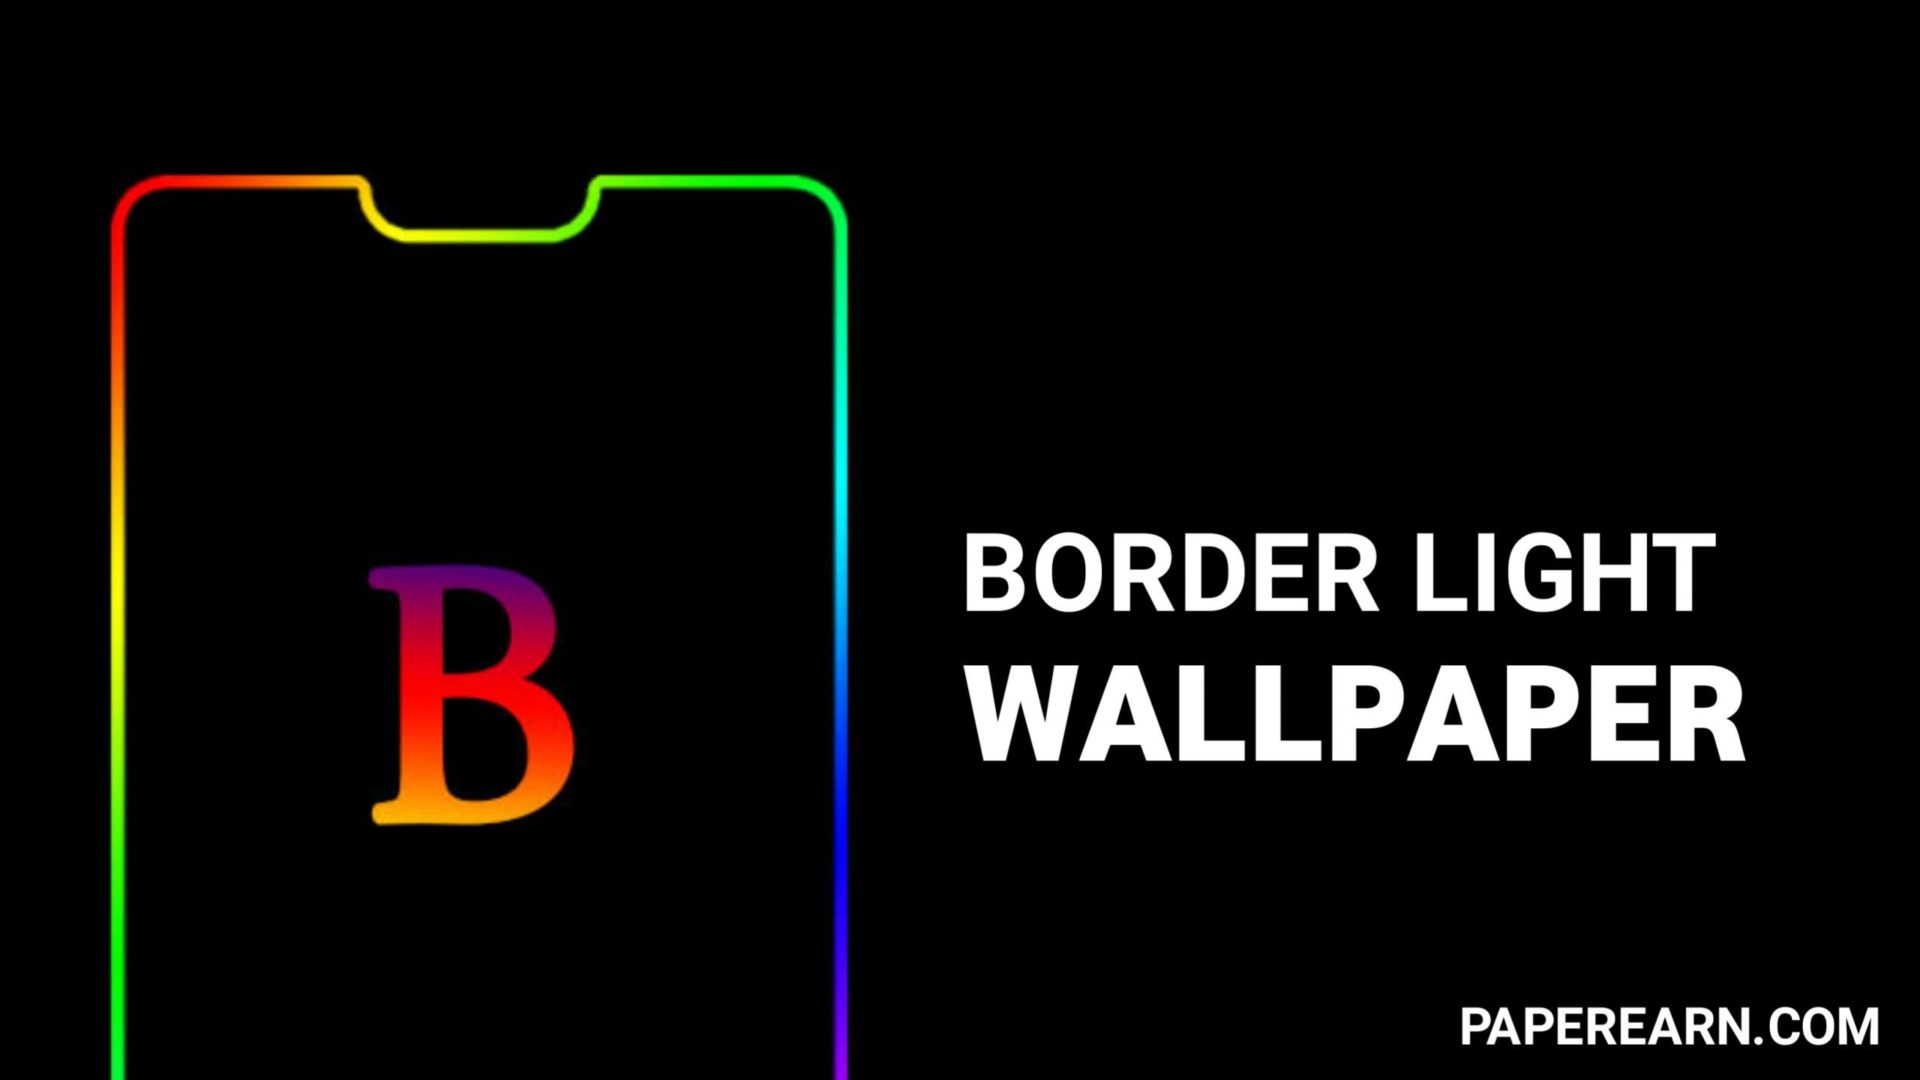 Border Light Live Wallpaper App - paperearn.com